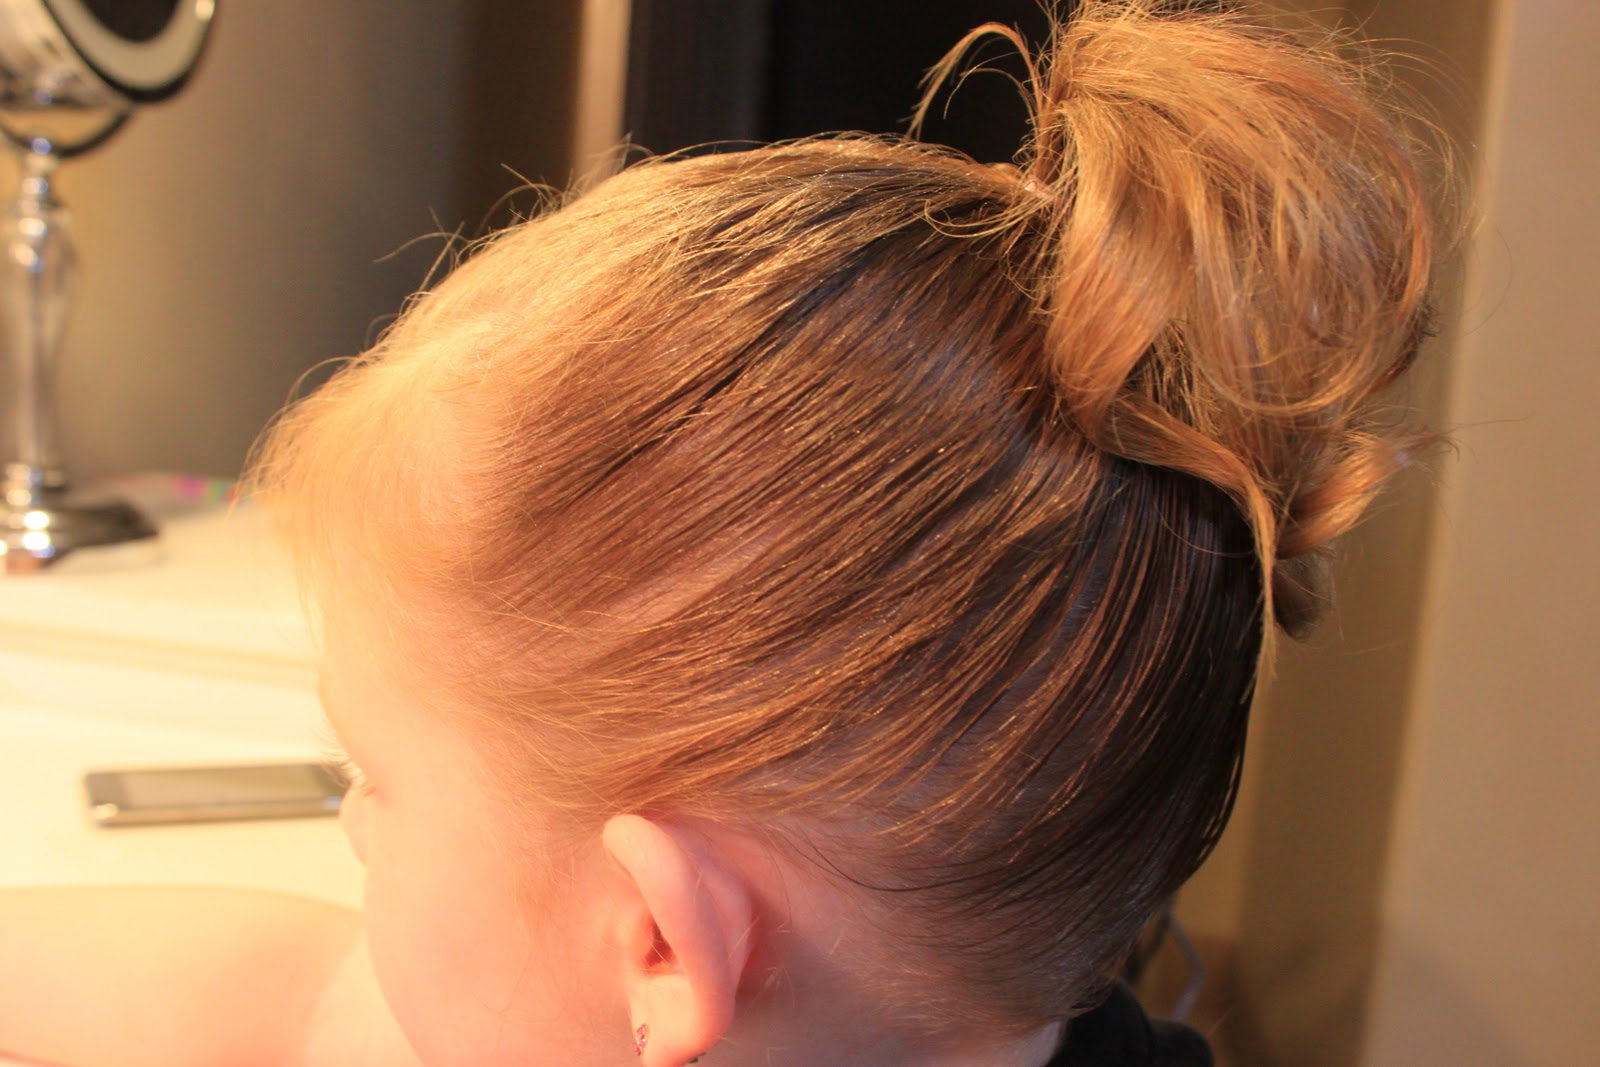 Hairstyles For Girls. (View 5 of 20)